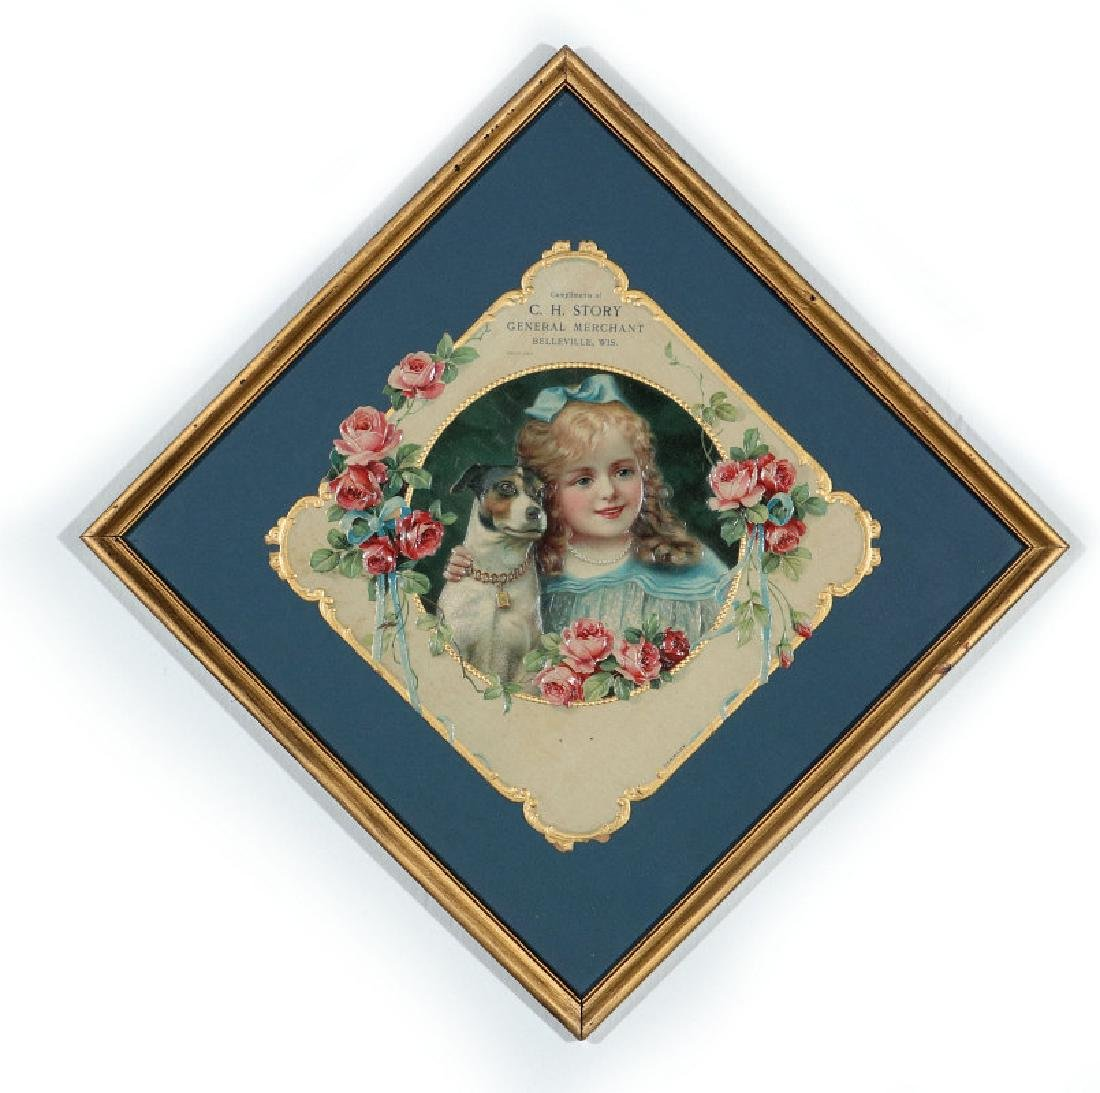 A VICTORIAN DIE-CUT COMPLIMENTS OF C. H. STORY, WI